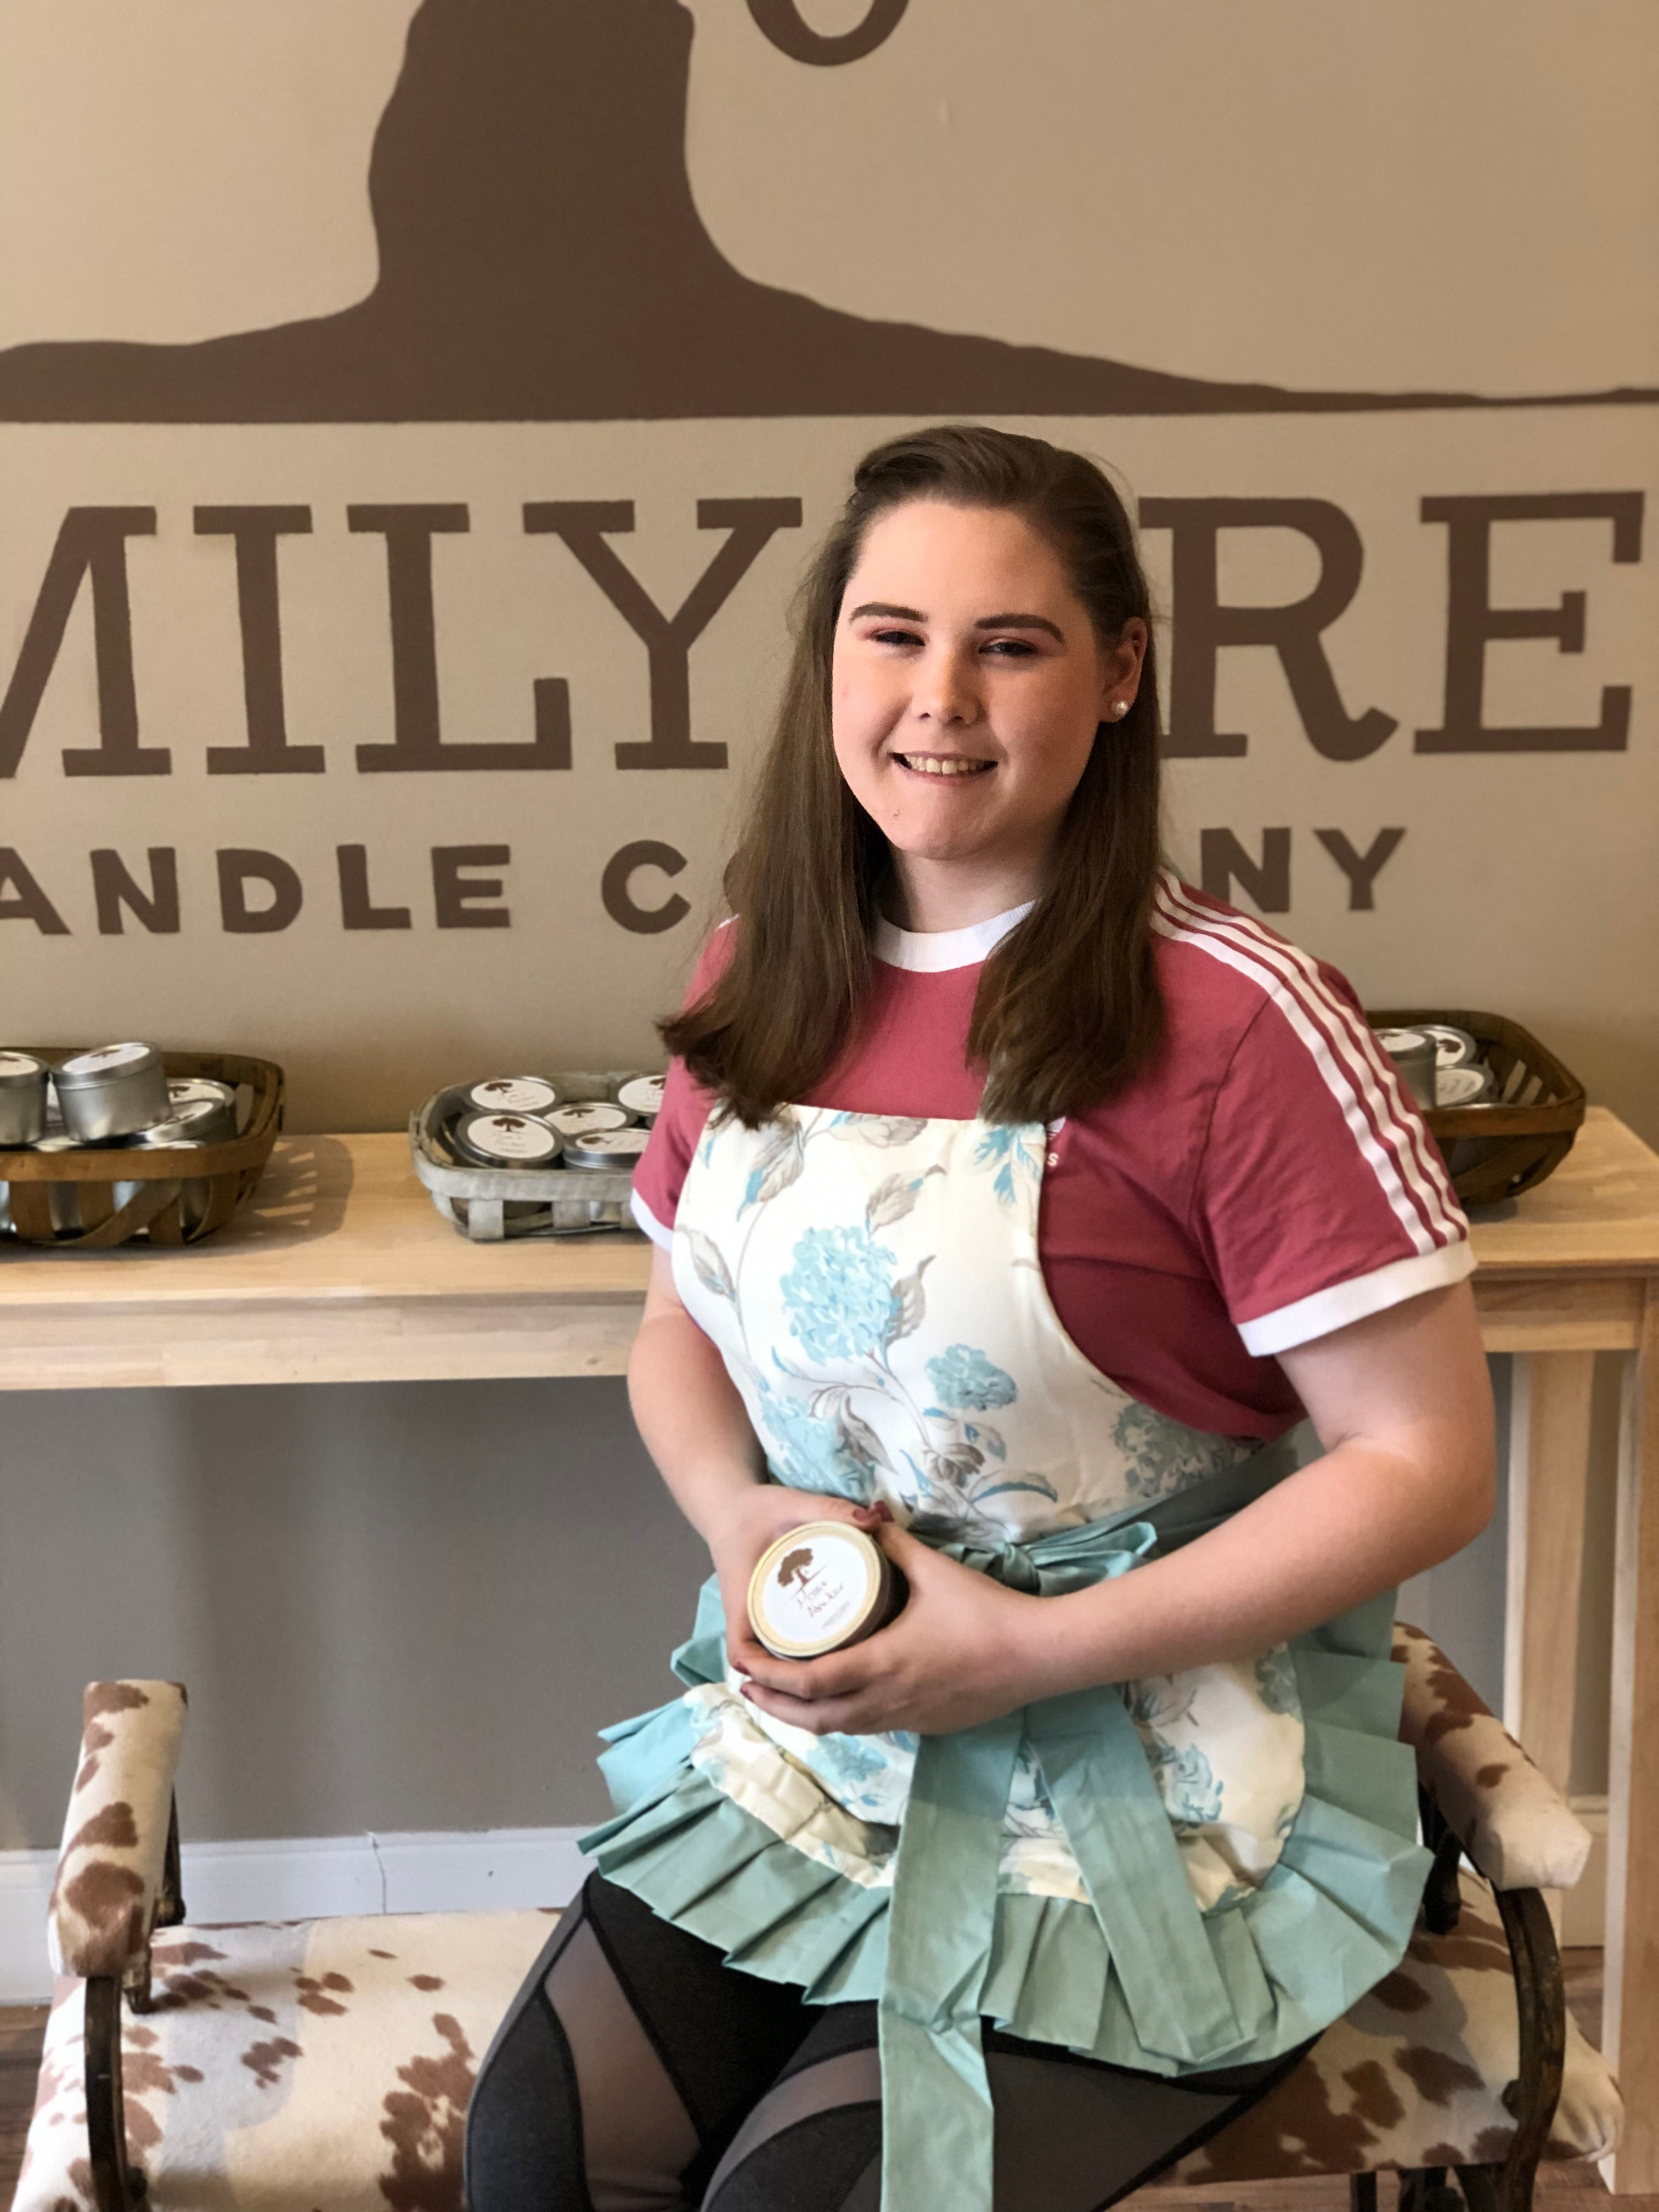 Meet the Team – Family Tree Candle Company